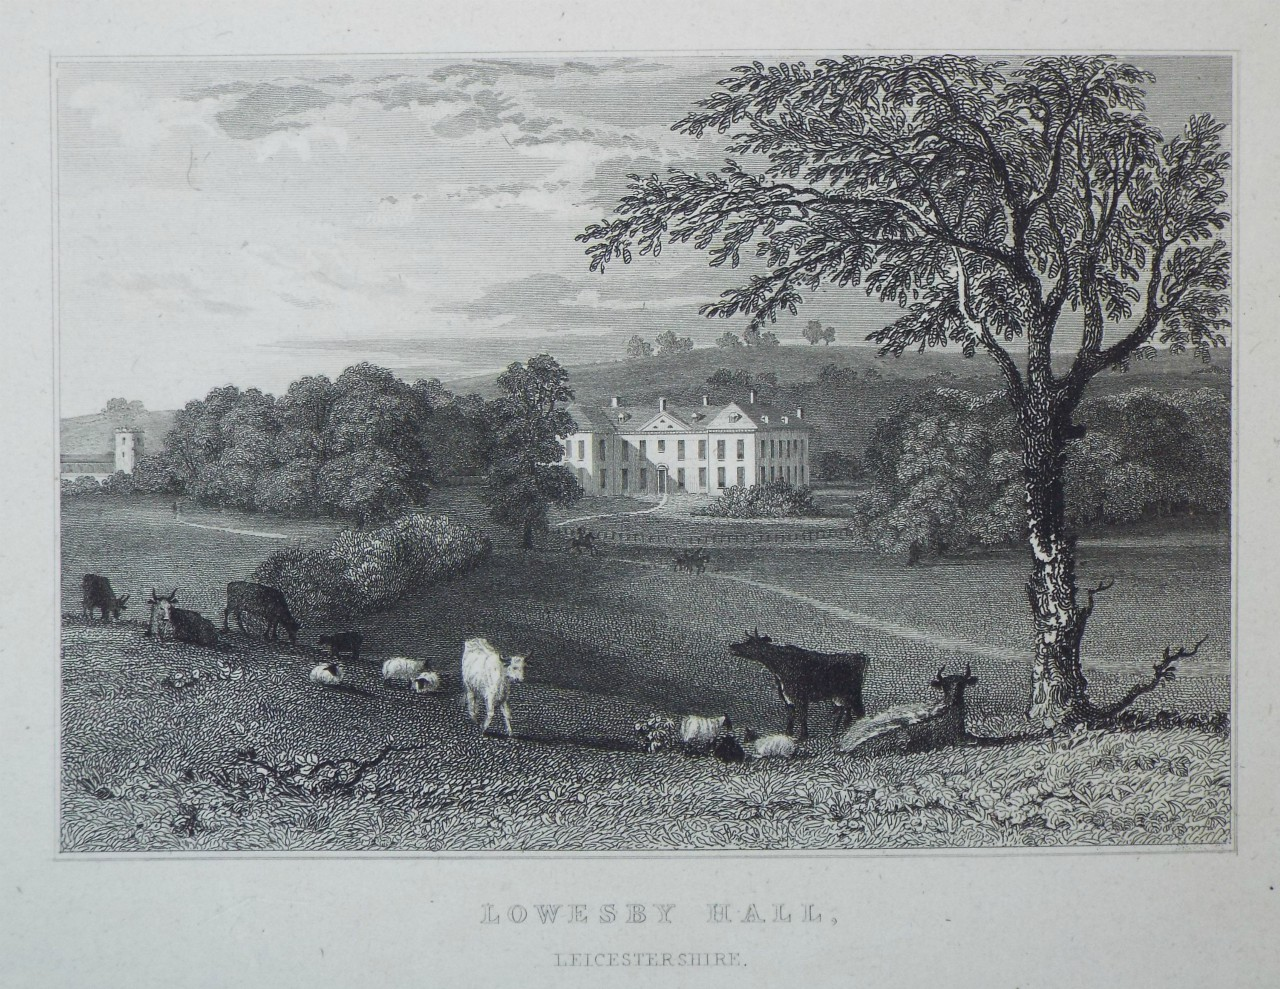 Print - Lowesby Hall, Leicestershire. - Capon